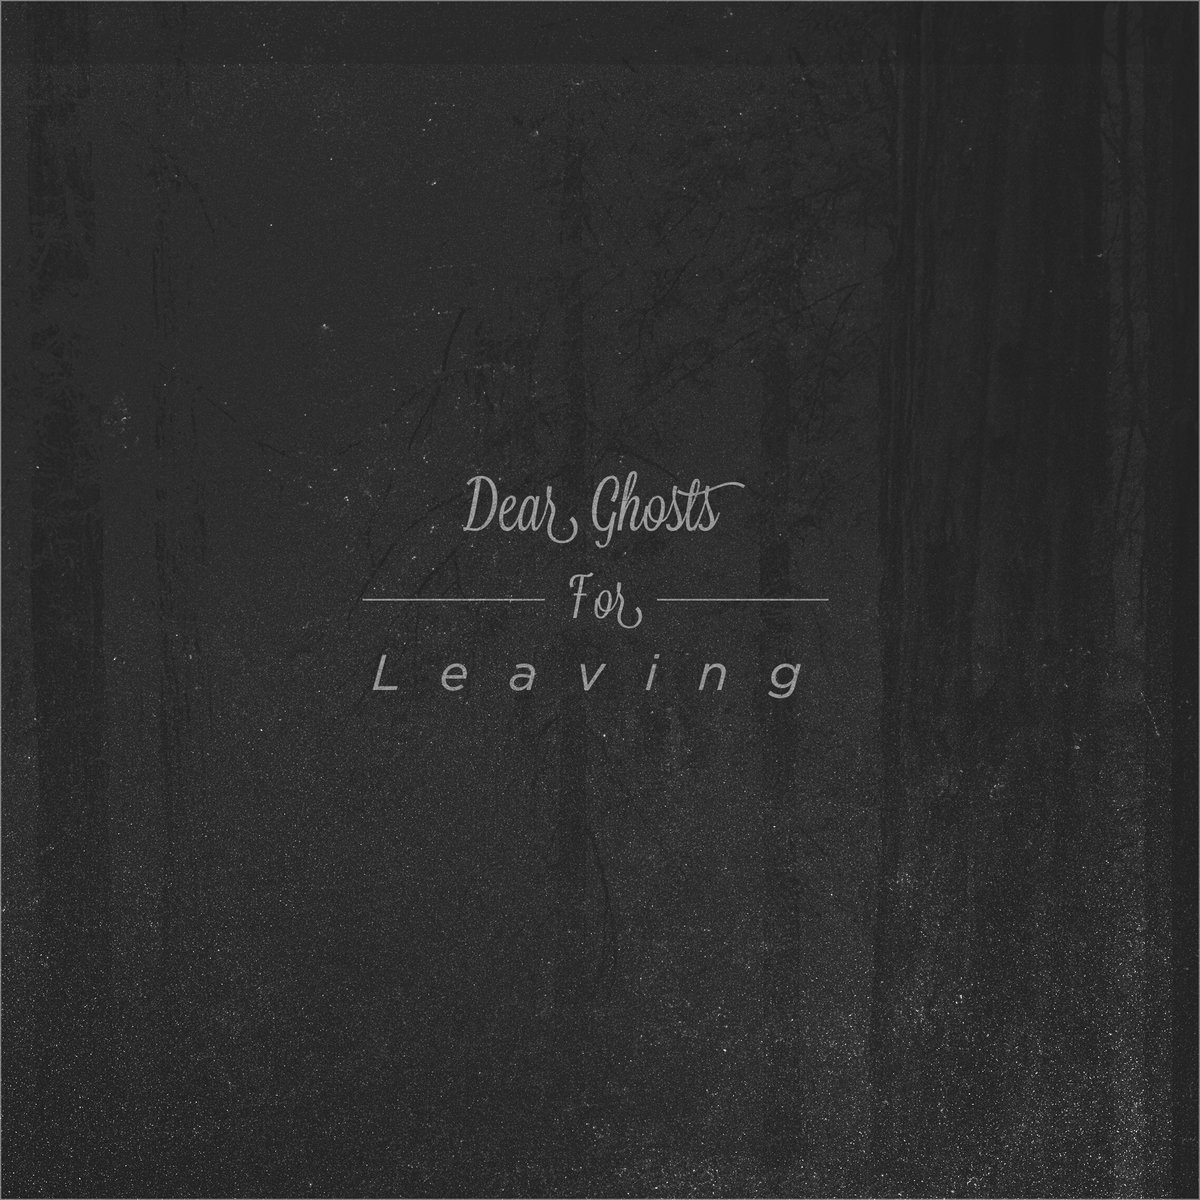 For Leaving EP | Dear Ghosts